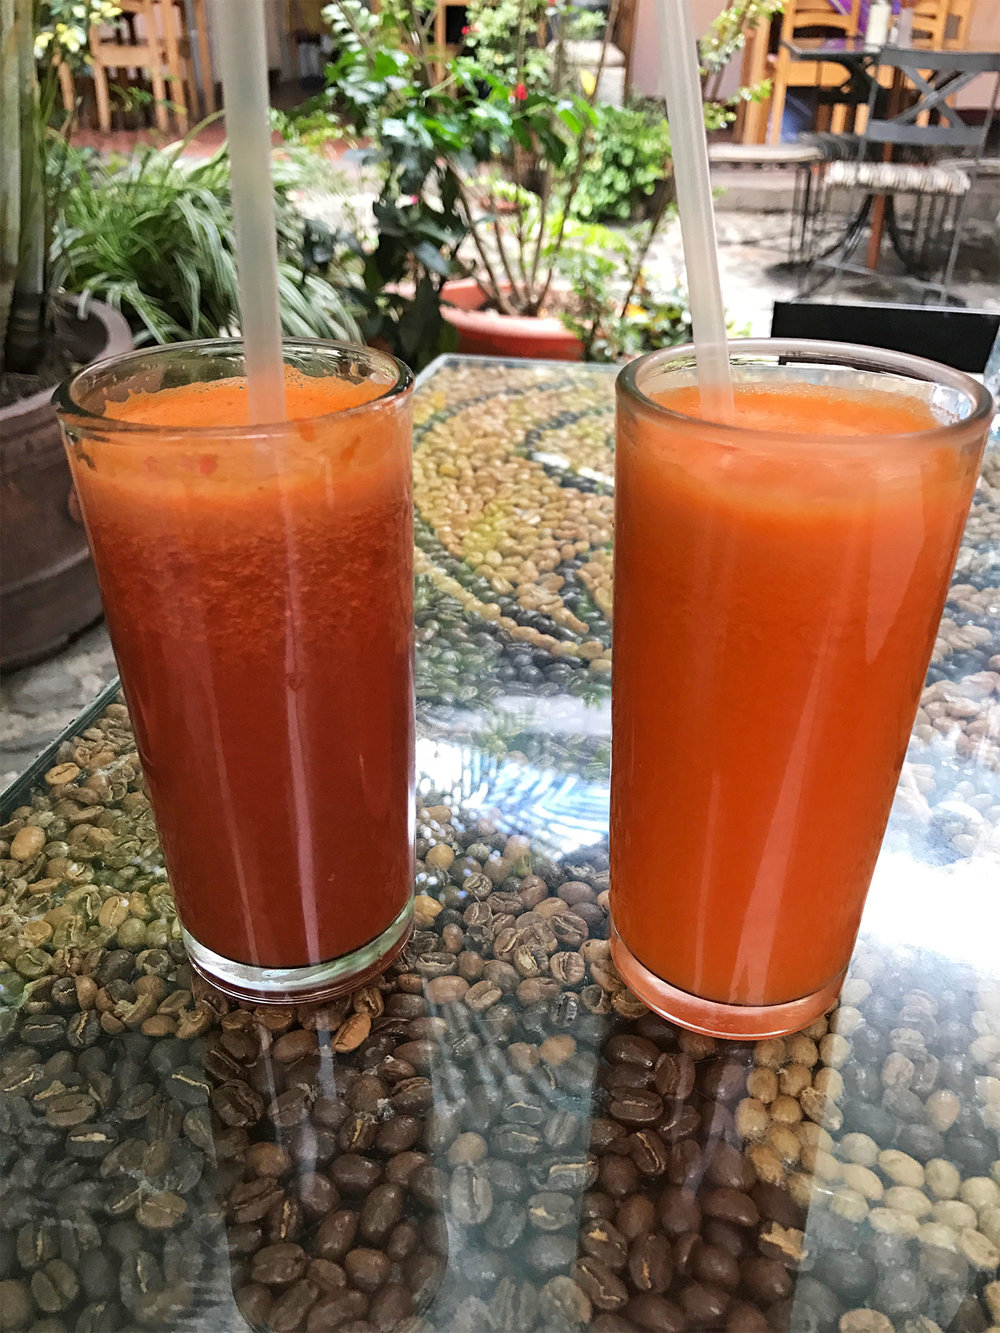 juices in Antigua Guatemala